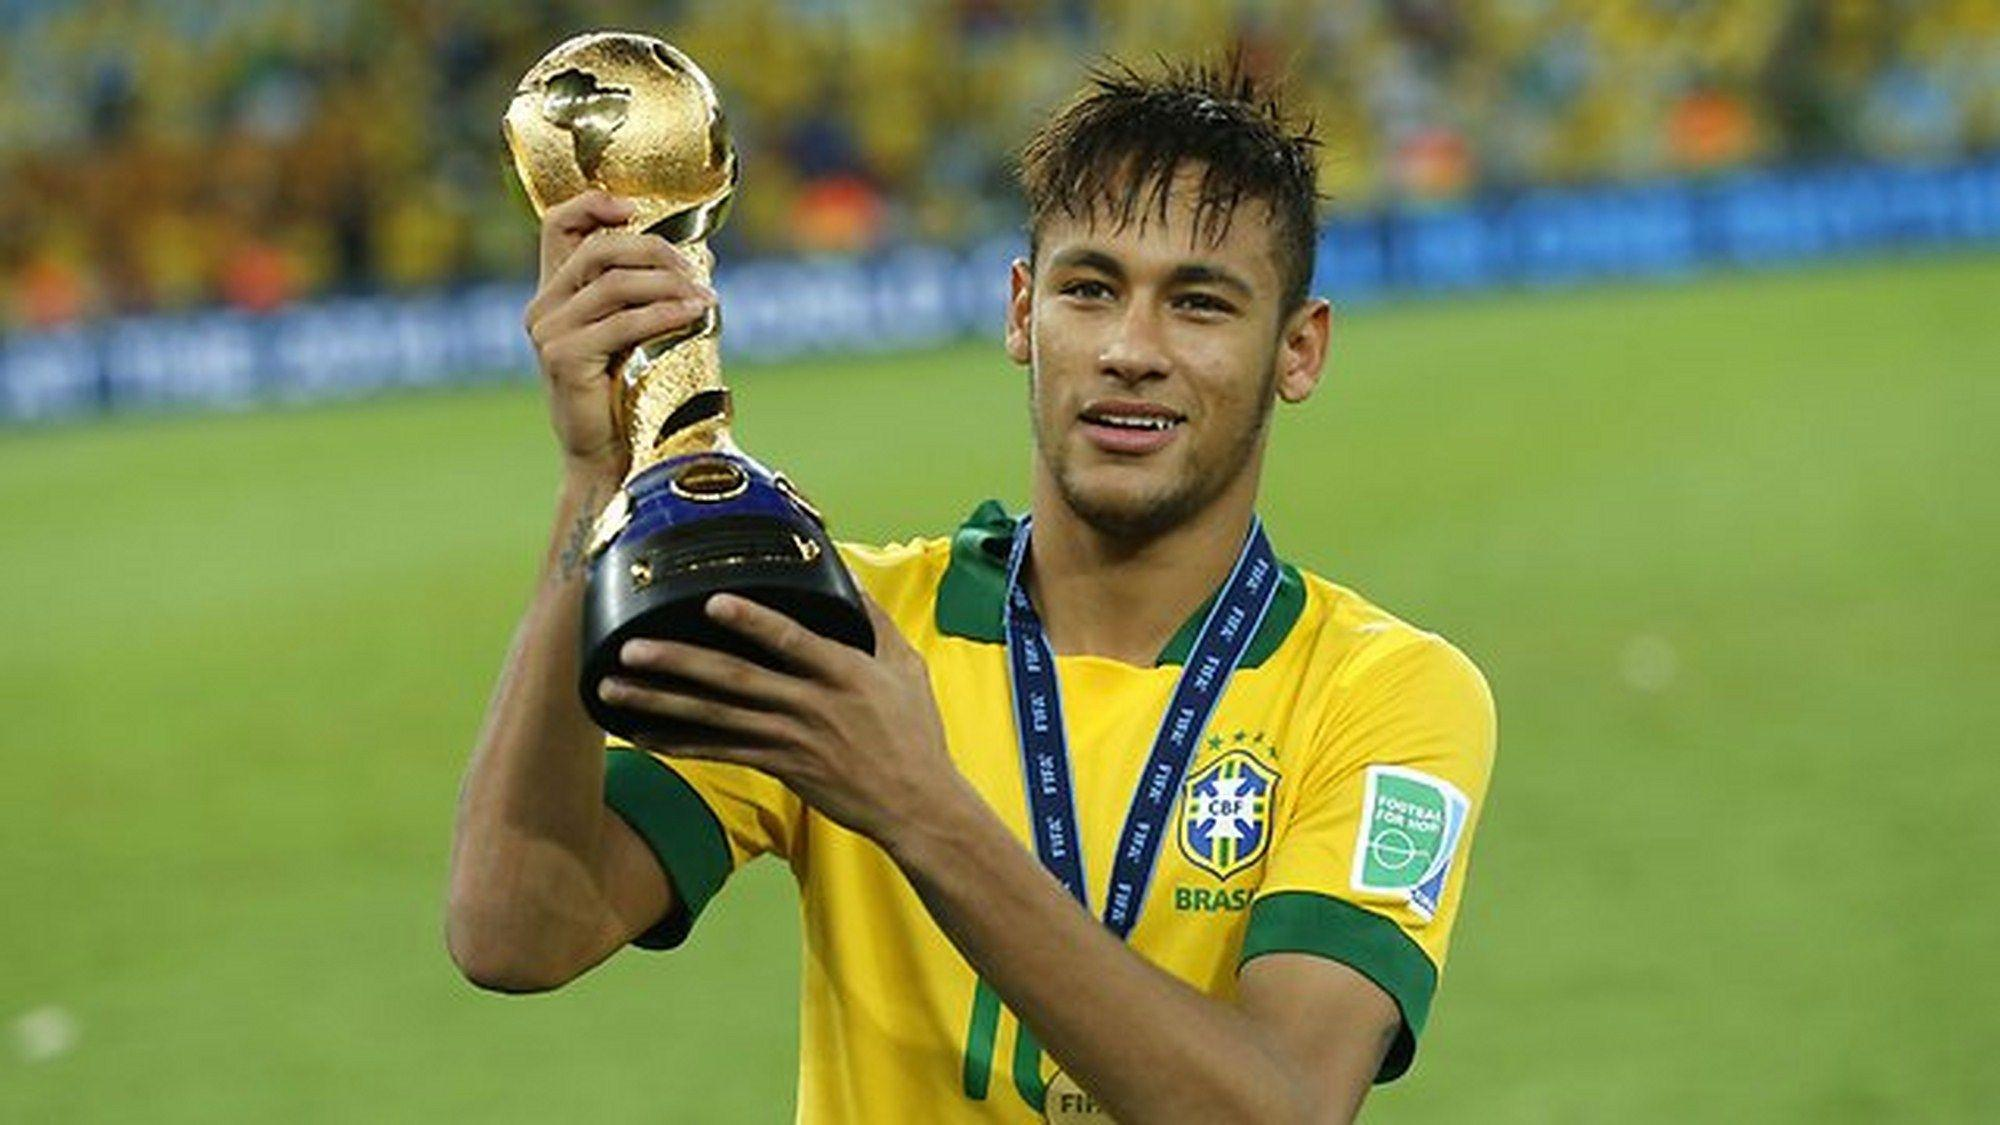 Neymar HD Wallpapers 2015 - Wallpaper Cave